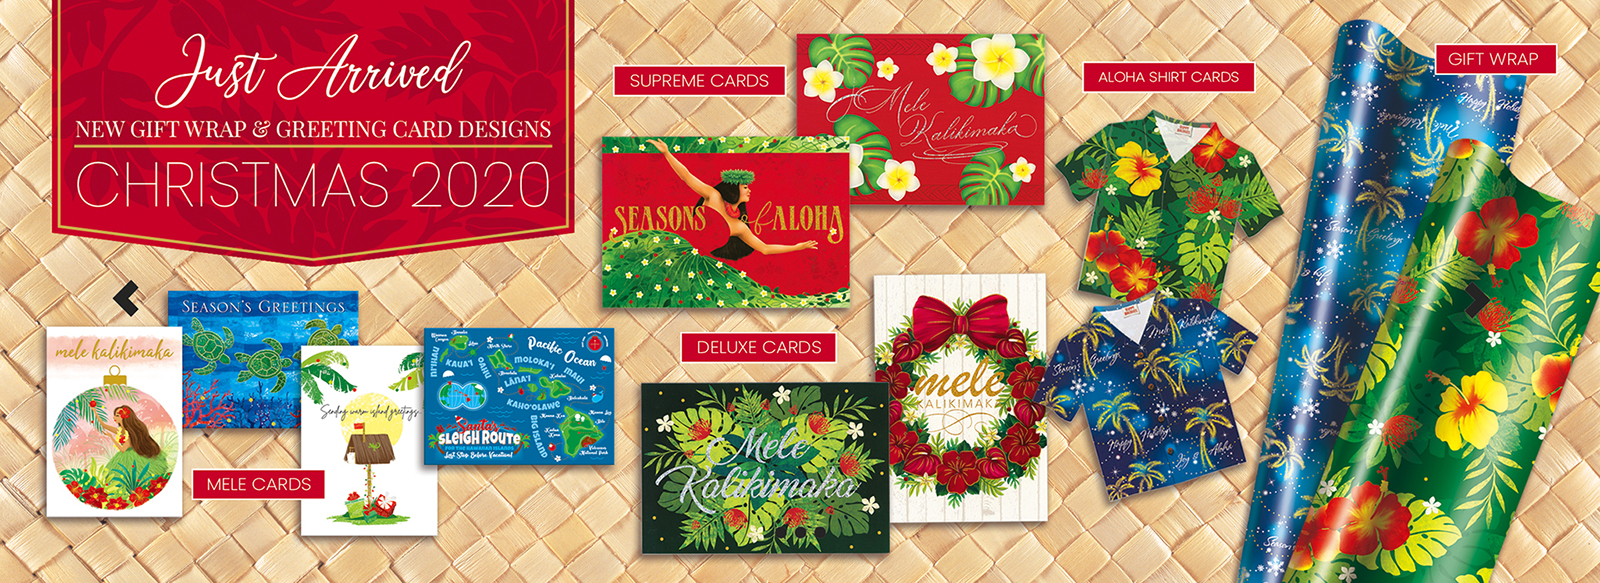 2020 Christmas - Greeting Cards and Gift Wrap